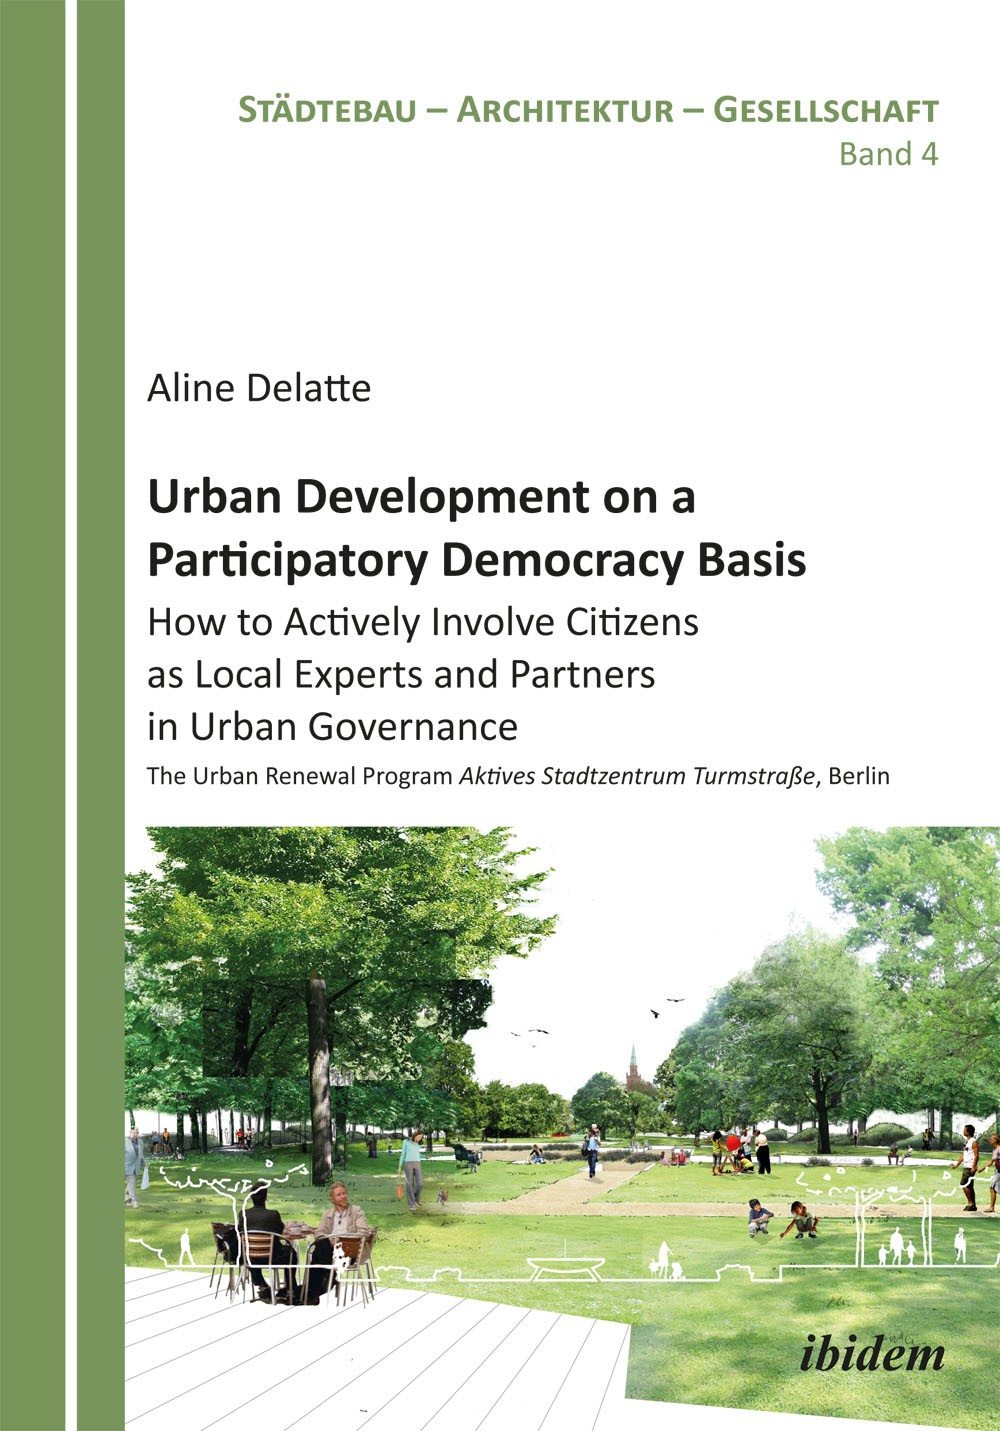 Urban Development on a Participatory Democracy Basis: How to Actively Involve Citizens as Local Experts and Partners in Urban Governance